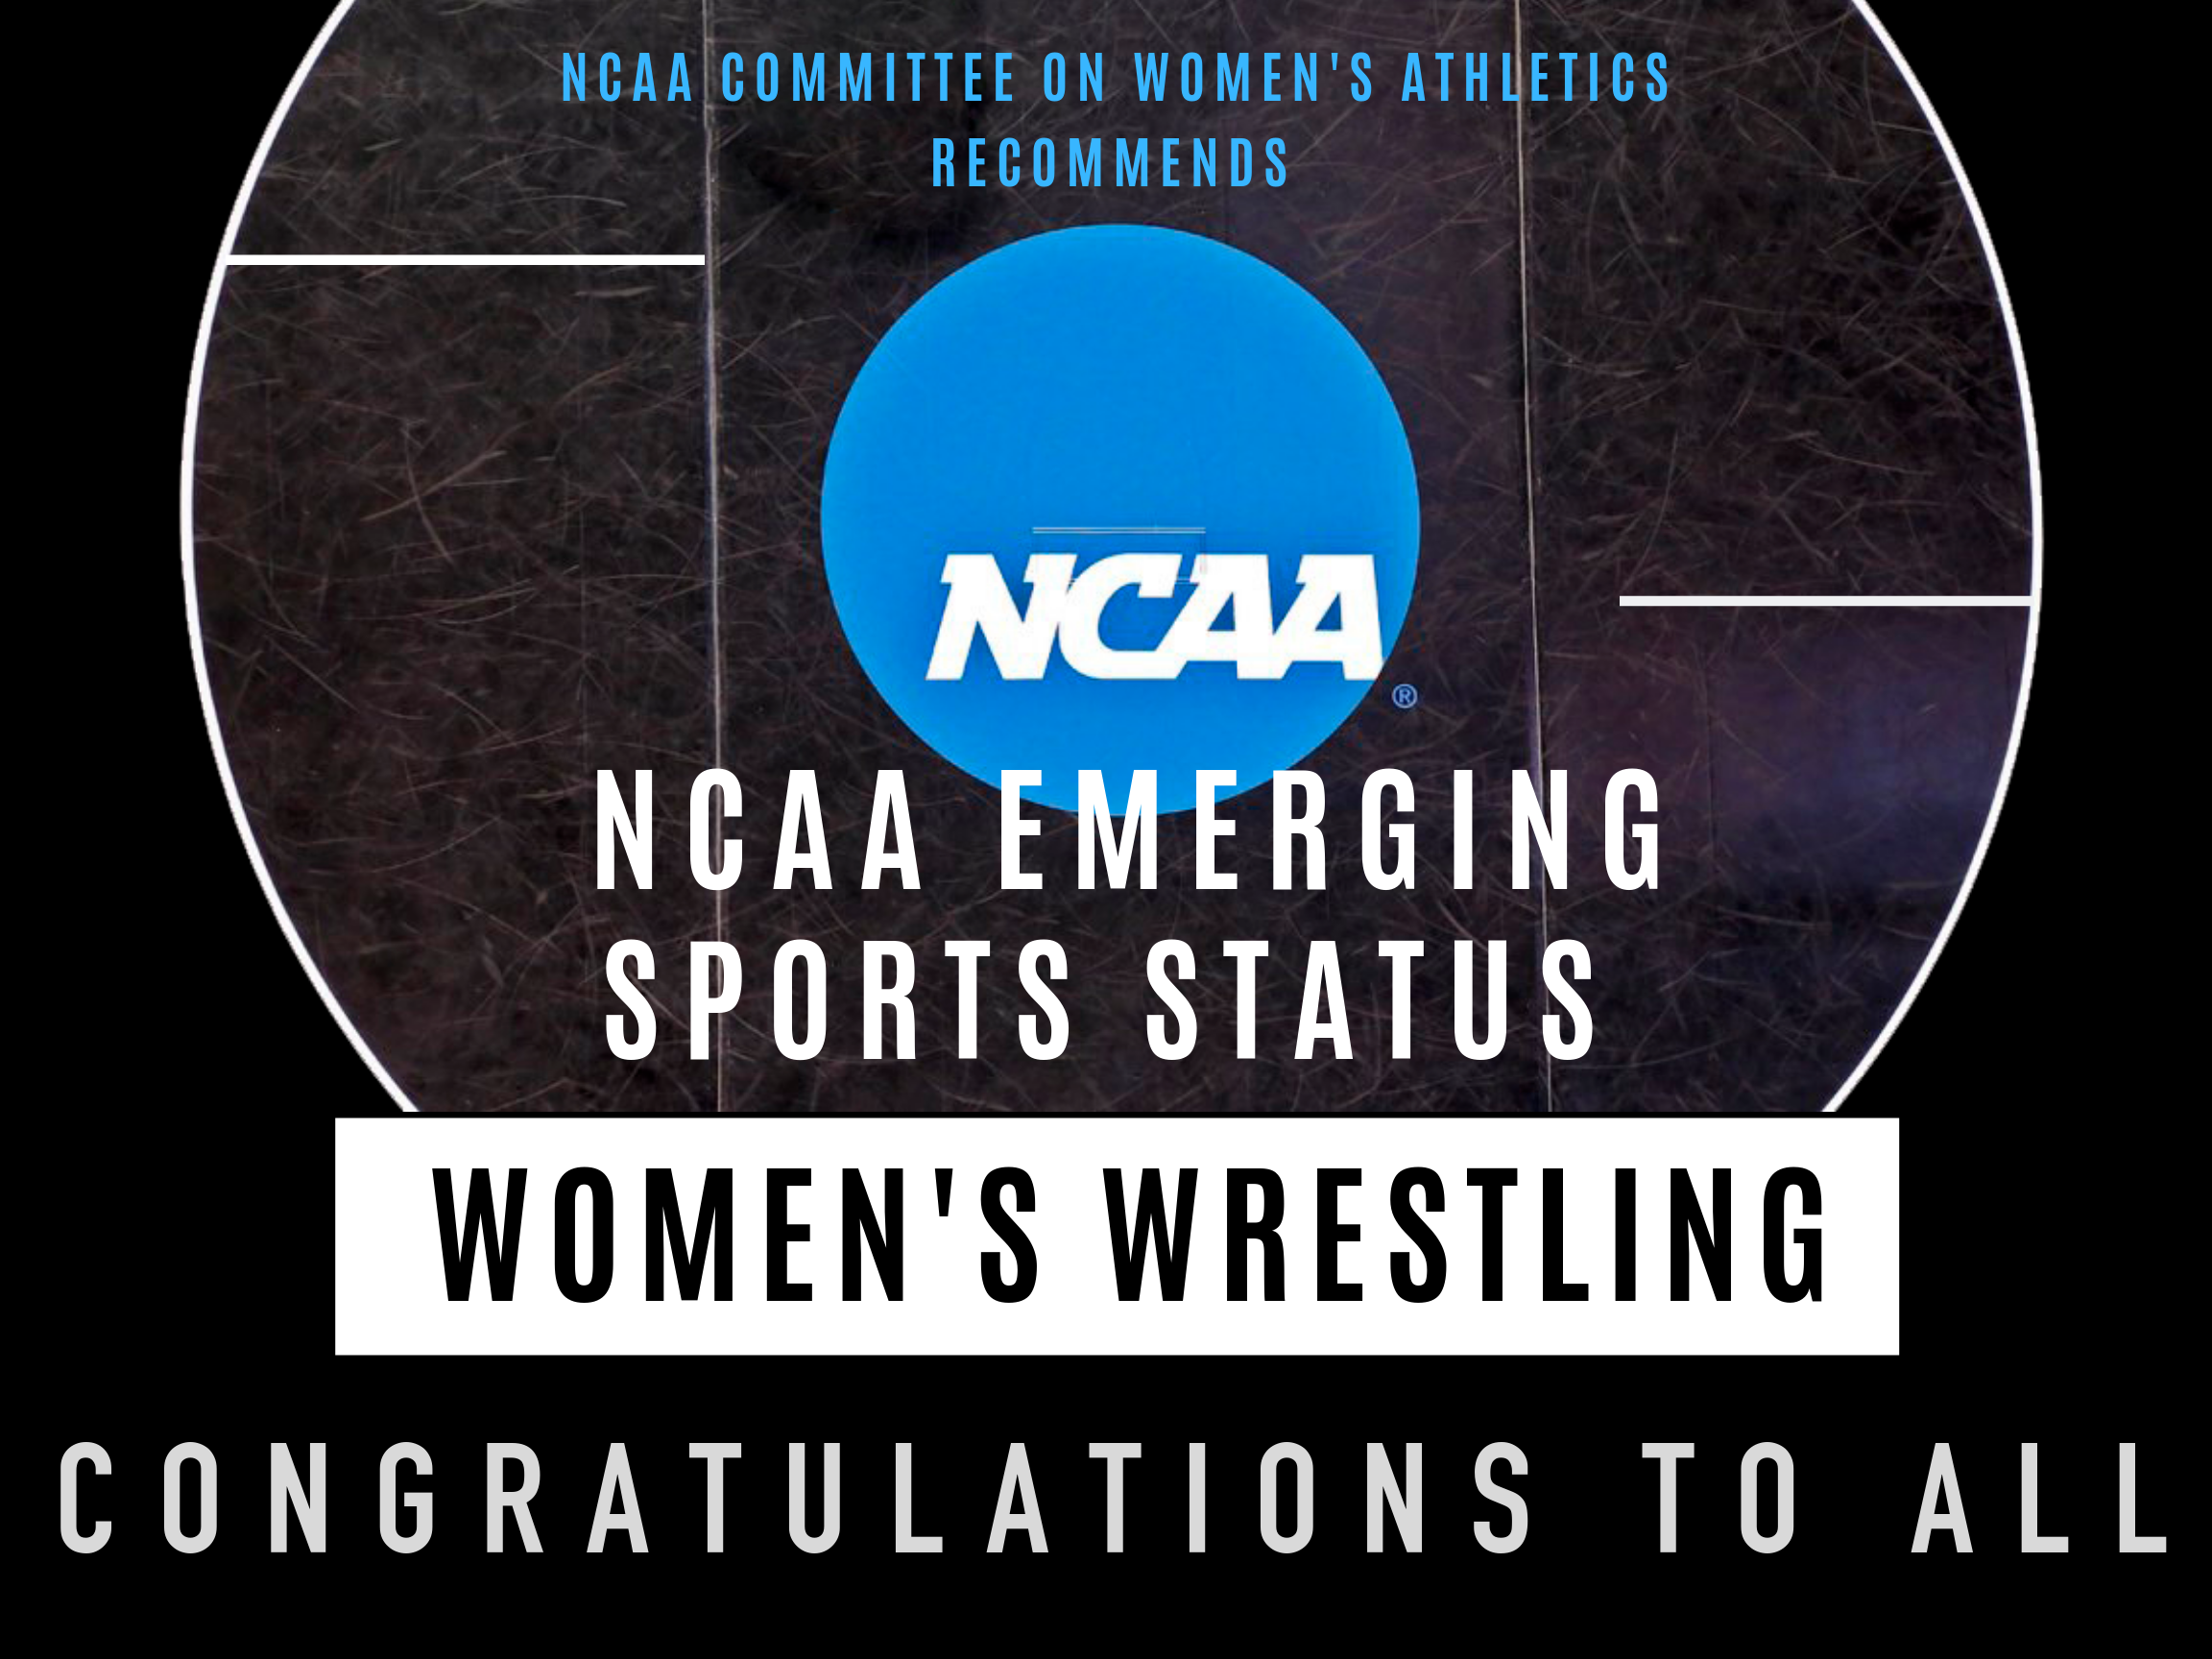 "NCAA Emerging sports status recommended for women's wrestling - Women's wrestling, acrobatics and tumbling, get backing to join NCAA emerging sportsThe NCAA Committee on Women's Athletics has recommended that all three divisions of the NCAA governance structure add two sports — women's wrestling, plus acrobatics and tumbling — to the NCAA Emerging Sports for Women program. If adopted, the sports would join the program Aug. 1, 2020.The committee identifies sports to be added to the Emerging Sports for Women program, which is a pipeline supporting the advancement of women's sports to NCAA championship status. The program also provides athletics opportunities for women and sport-sponsorship options for colleges and universities. Schools also may use an emerging sport to help meet membership minimum sports-sponsorship requirements and financial aid requirements.A sport must have a minimum of 20 varsity teams and/or competitive club teams that have competed in a minimum of five contests to be considered for the emerging sports program. The sport must reach 40 varsity programs to move forward to the NCAA governance structure for championship consideration.The Wrestle Like a Girl organization, in conjunction with USA Wrestling, indicated there are 23 NCAA schools currently sponsoring the sport. The committee applauded the groups for the overall continued growth of women's wrestling, and specifically for the potential growth of the sport at colleges and universities that currently sponsor men's wrestling. They also noted the relatively low cost to sponsor women's wrestling and the organizations' commitment to increasing opportunities for a more diverse student-athlete base and to expanding coaching opportunities for women.The National Collegiate Acrobatics and Tumbling Association currently has 20 NCAA colleges and universities sponsoring the sport, which is a discipline of gymnastics involving tumbling, tosses, acrobatic lifts and pyramids. The Committee on Women's Athletics commended acrobatics and tumbling for showing how its student-athletes already were integrated fully within athletics departments; how they are enjoying experiences comparable to those of other NCAA student-athletes; and how the sport could grow.""On behalf of the NCAA Committee on Women's Athletics, I would like to commend the leaders of both the acrobatics and tumbling and the women's wrestling communities and thank them for their extensive work to ensure young female athletes in these sports are able to continue their participation at the collegiate level,"" said Julie Cromer Peoples, committee chair and senior deputy athletics director for administration/senior woman administrator at Arkansas. ""The CWA worked with representatives of both sports for several years to prepare them for advancement to NCAA emerging sport status, and we encourage all three divisions to support this expansion of opportunities for young women on NCAA campuses that choose to sponsor these sports.""The Emerging Sports for Women program has been in existence since 1994. In the past 21 years, several sports have reached championship status, including beach volleyball, rowing, ice hockey, water polo and bowling. The program currently has three sports: equestrian, rugby and triathlon."